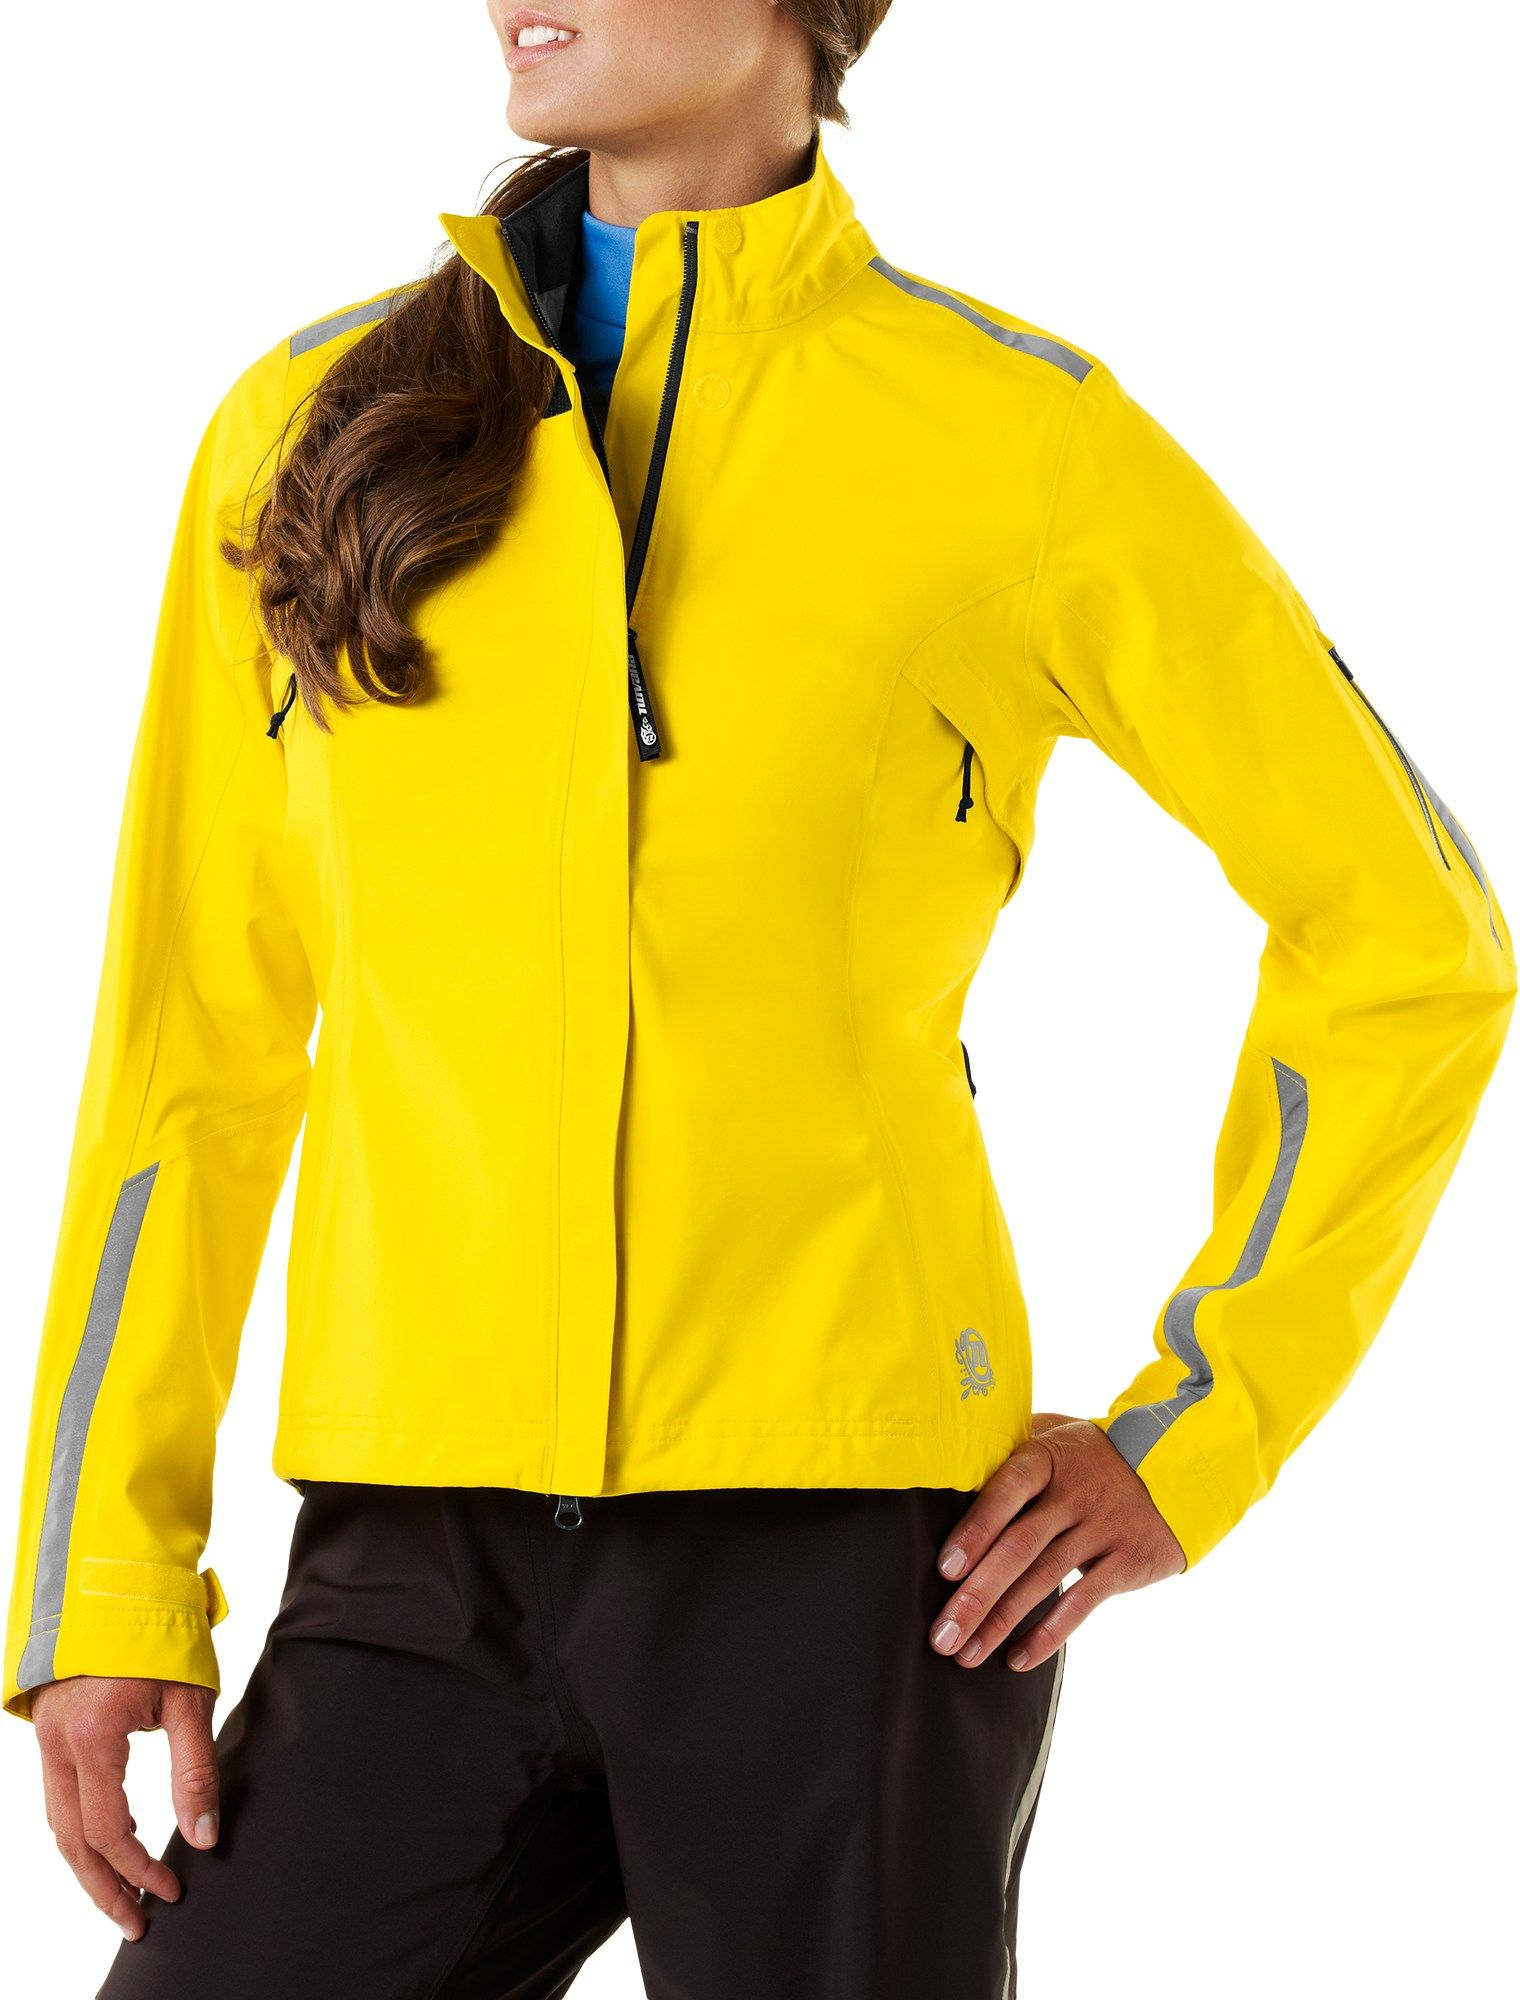 Novara Stratos Bike Jacket Women S Free Shipping At